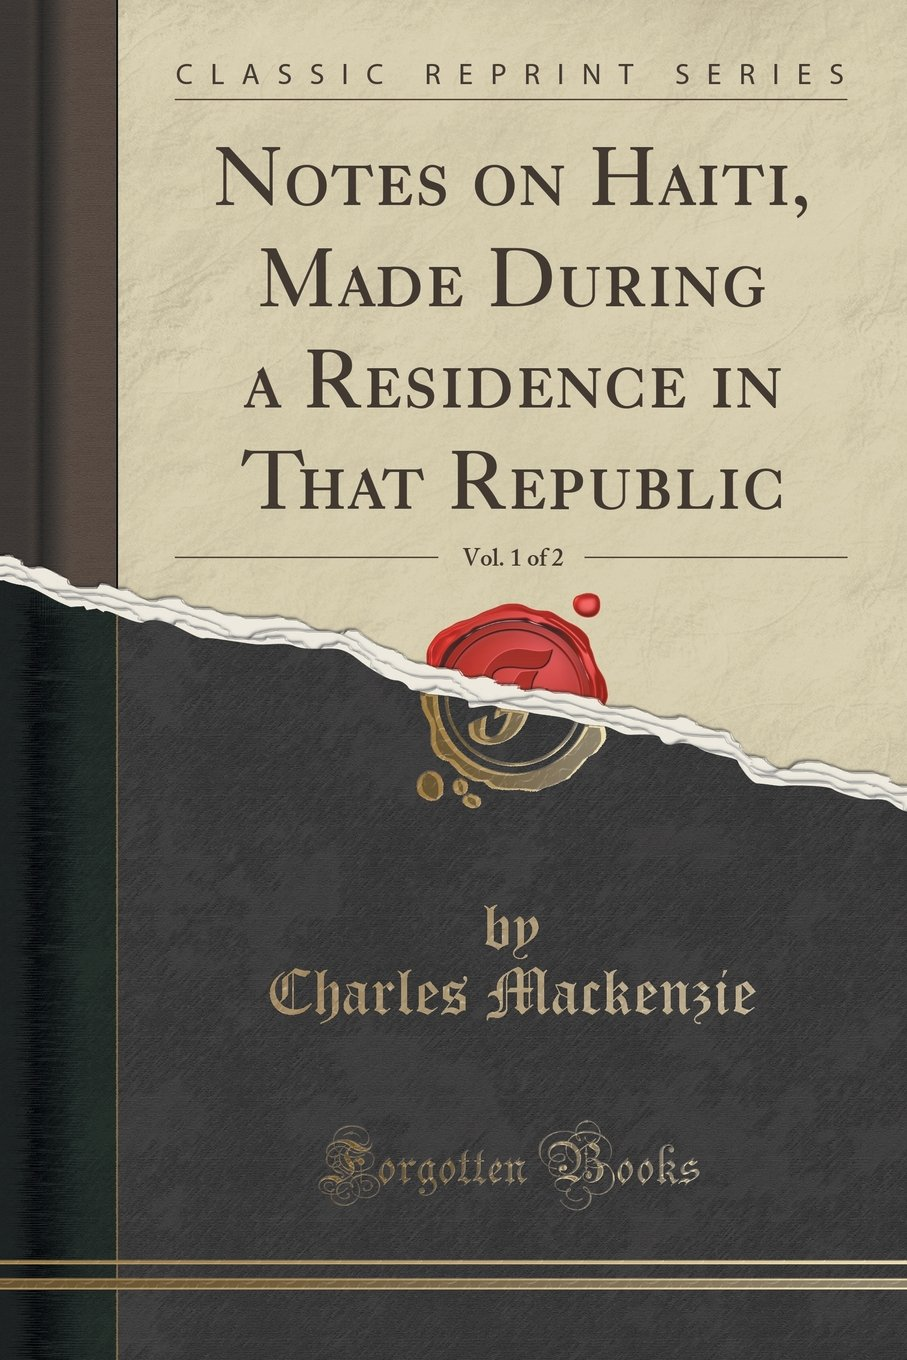 notes-on-haiti-made-during-a-residence-in-that-republic-vol-1-of-2-classic-reprint